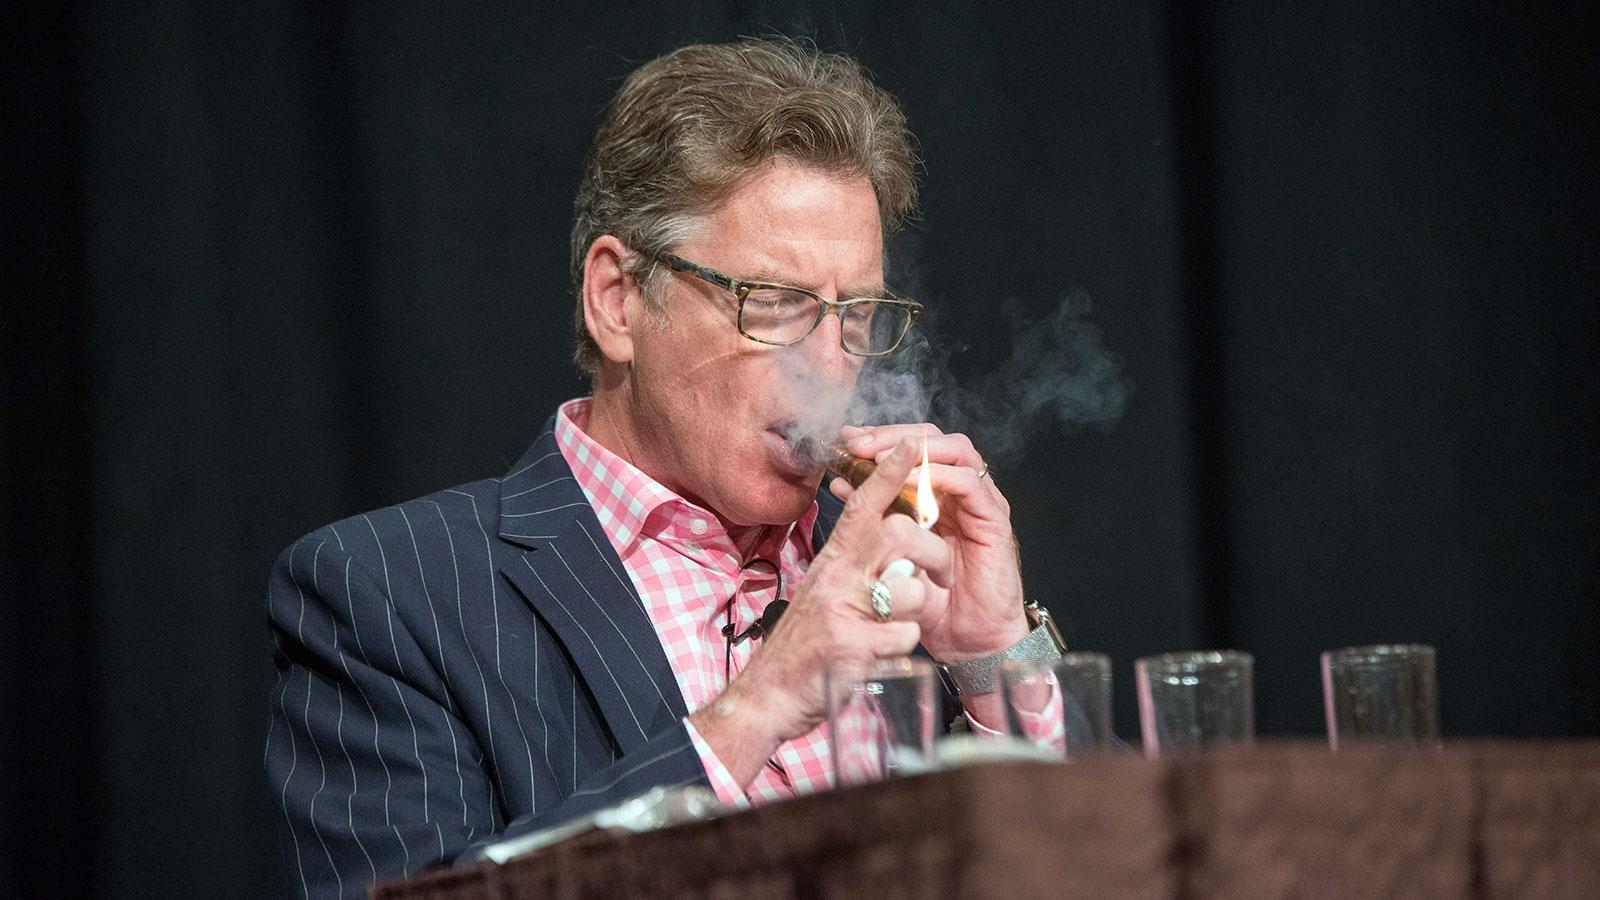 Cigar Aficionado senior features editor Jack Bettridge and spirits guru led the Scotch pairing seminar.